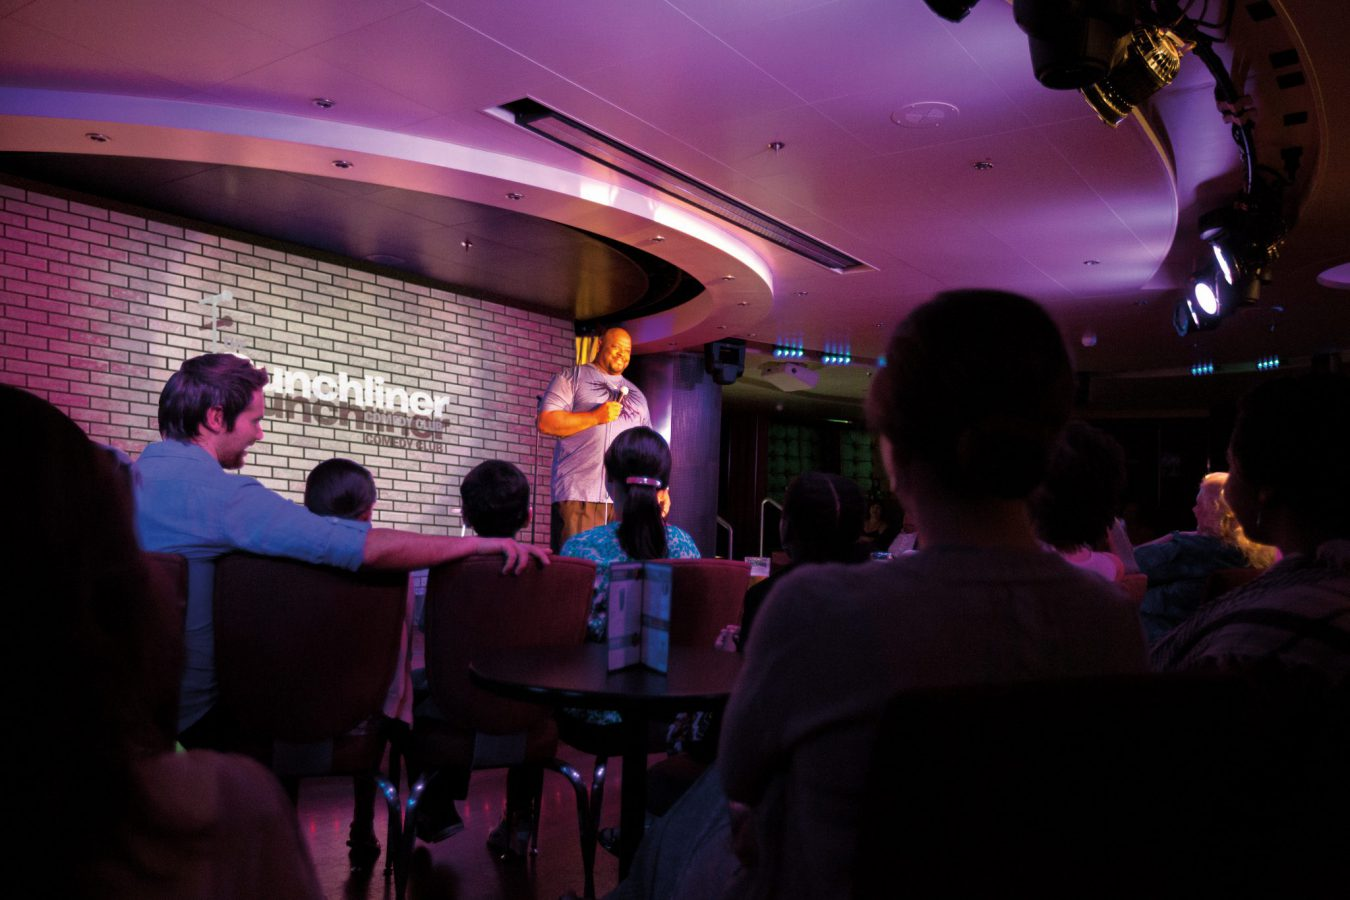 Carnival Cruise Lines Punchliner Comedy Club AllThingsCruise - Punchliner comedy club